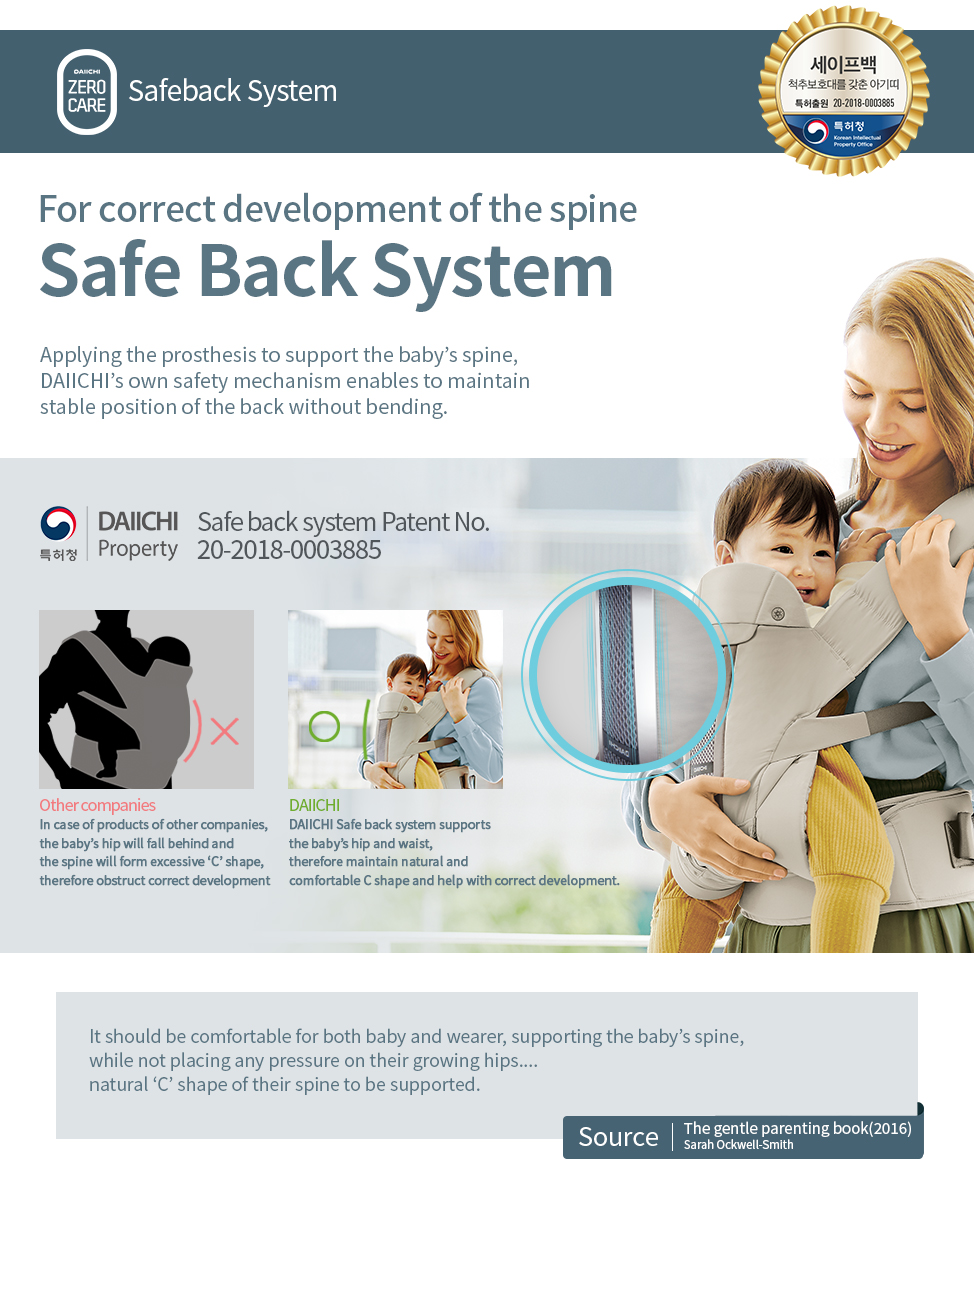 For correct development of the spine, Safe back system. Applying the prosthesis to support the baby's spine, DAIICHI's own safety mechanism enables to maintain stable position of the back without bending.